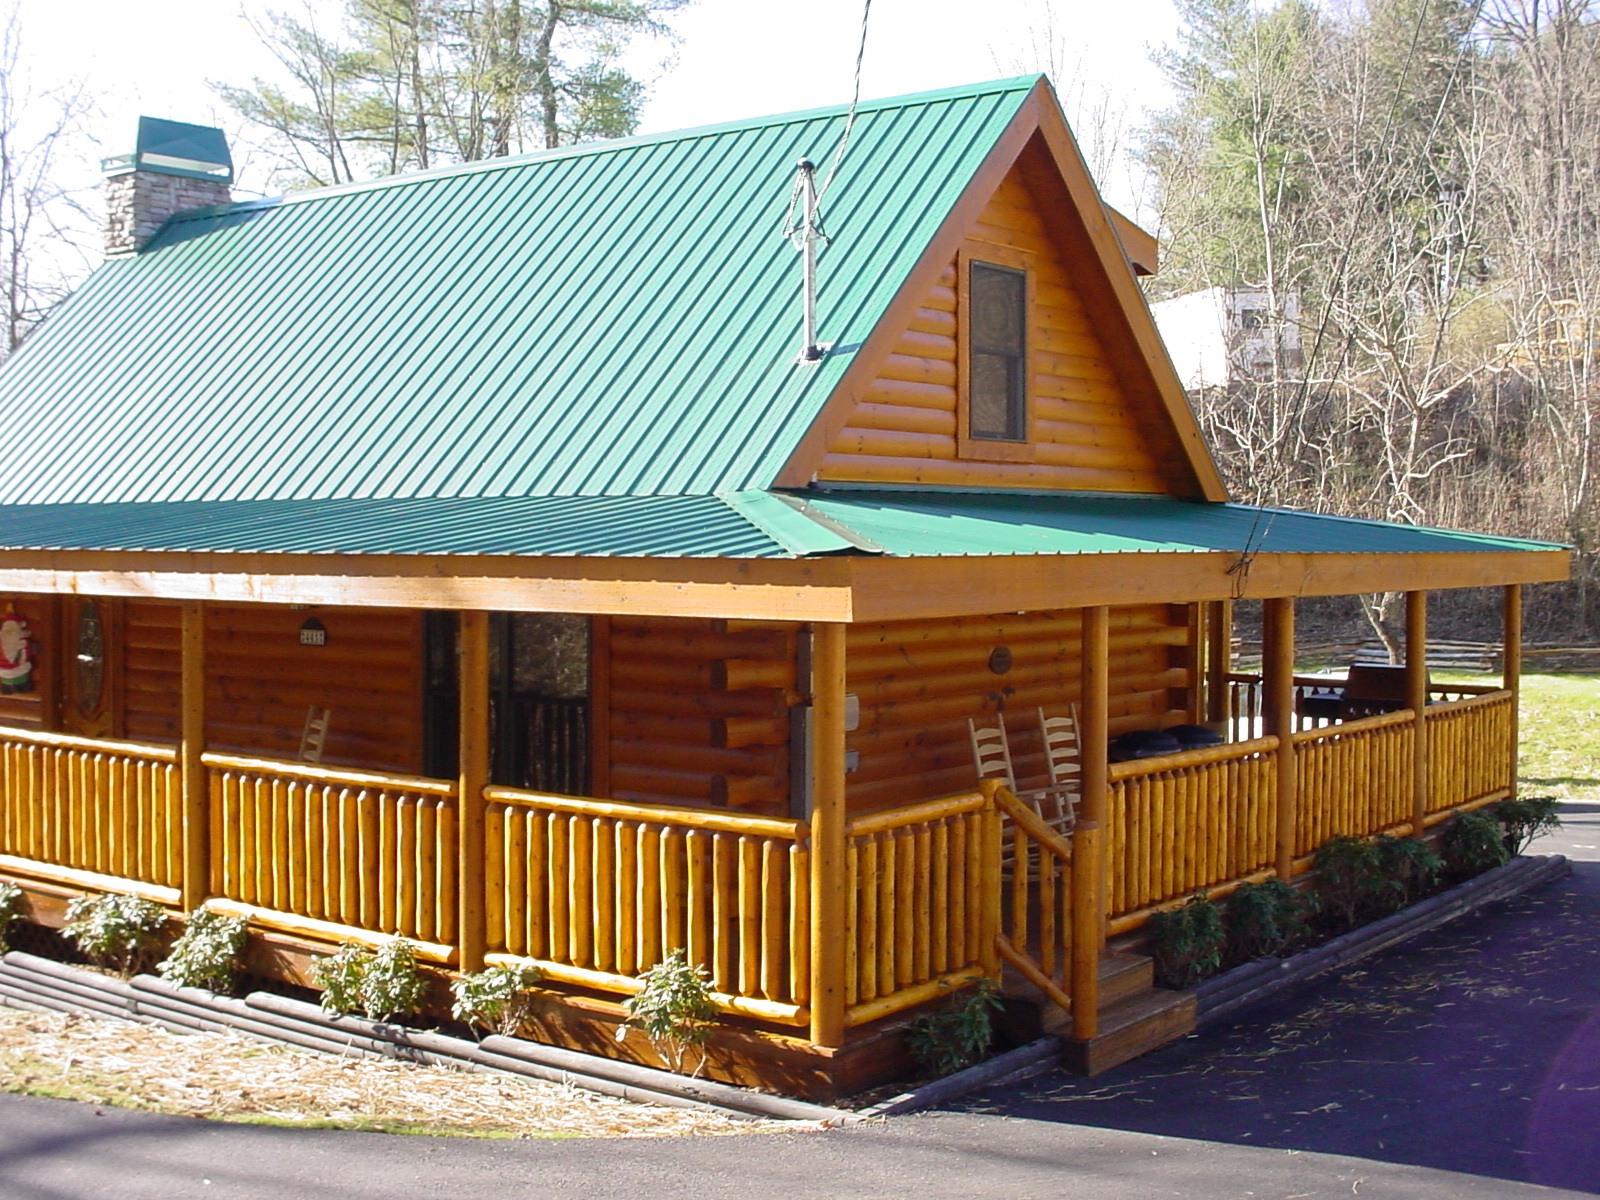 mountains road nature cabin cabins dp fork in on trail gatlinburg ogle near the motor great smoky roaring trips sm scenic my bud tn drive noah